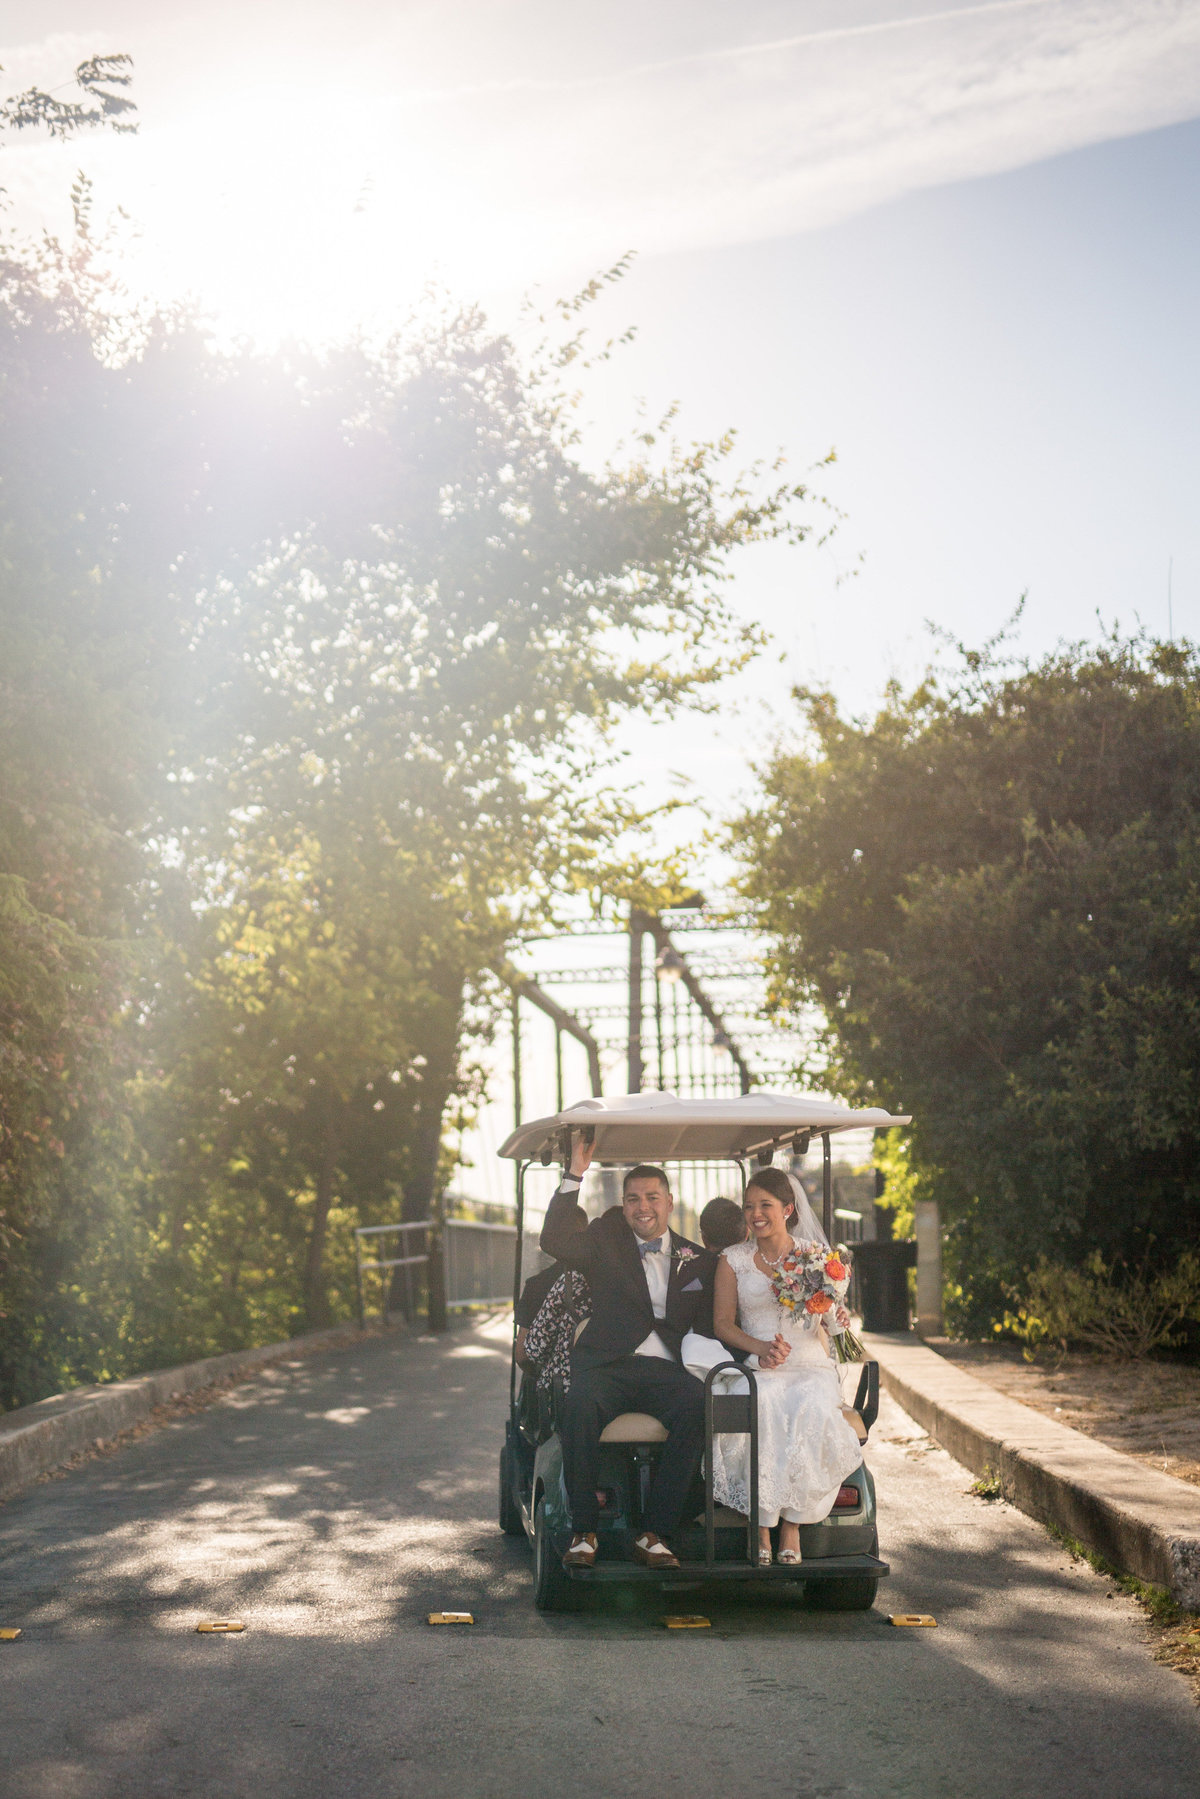 bride and groom sitting on golf cart after wedding ceremony heading to take pictures on bridge